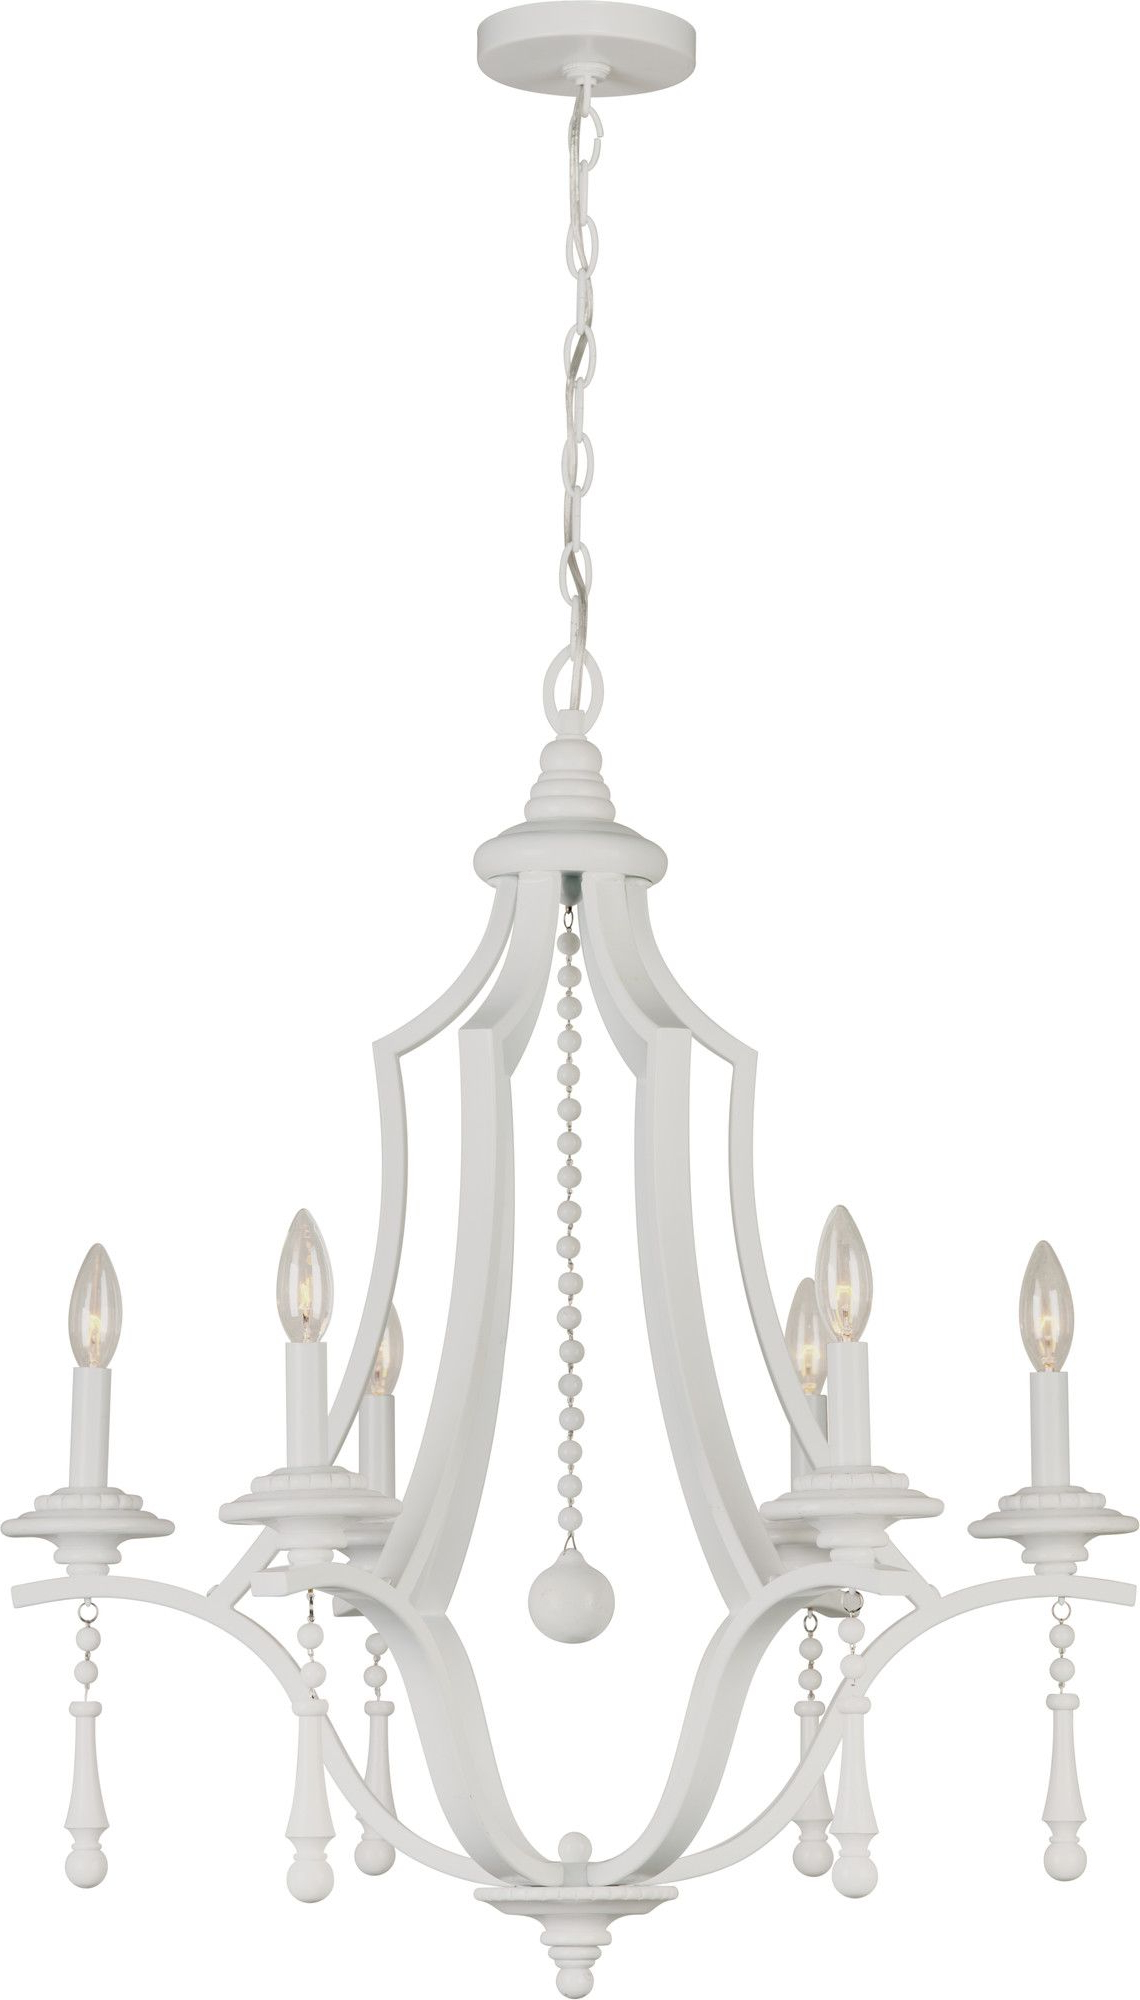 Diaz 6 Light Candle Style Chandeliers For Popular Parson 6 Light Chandelier (Gallery 24 of 25)